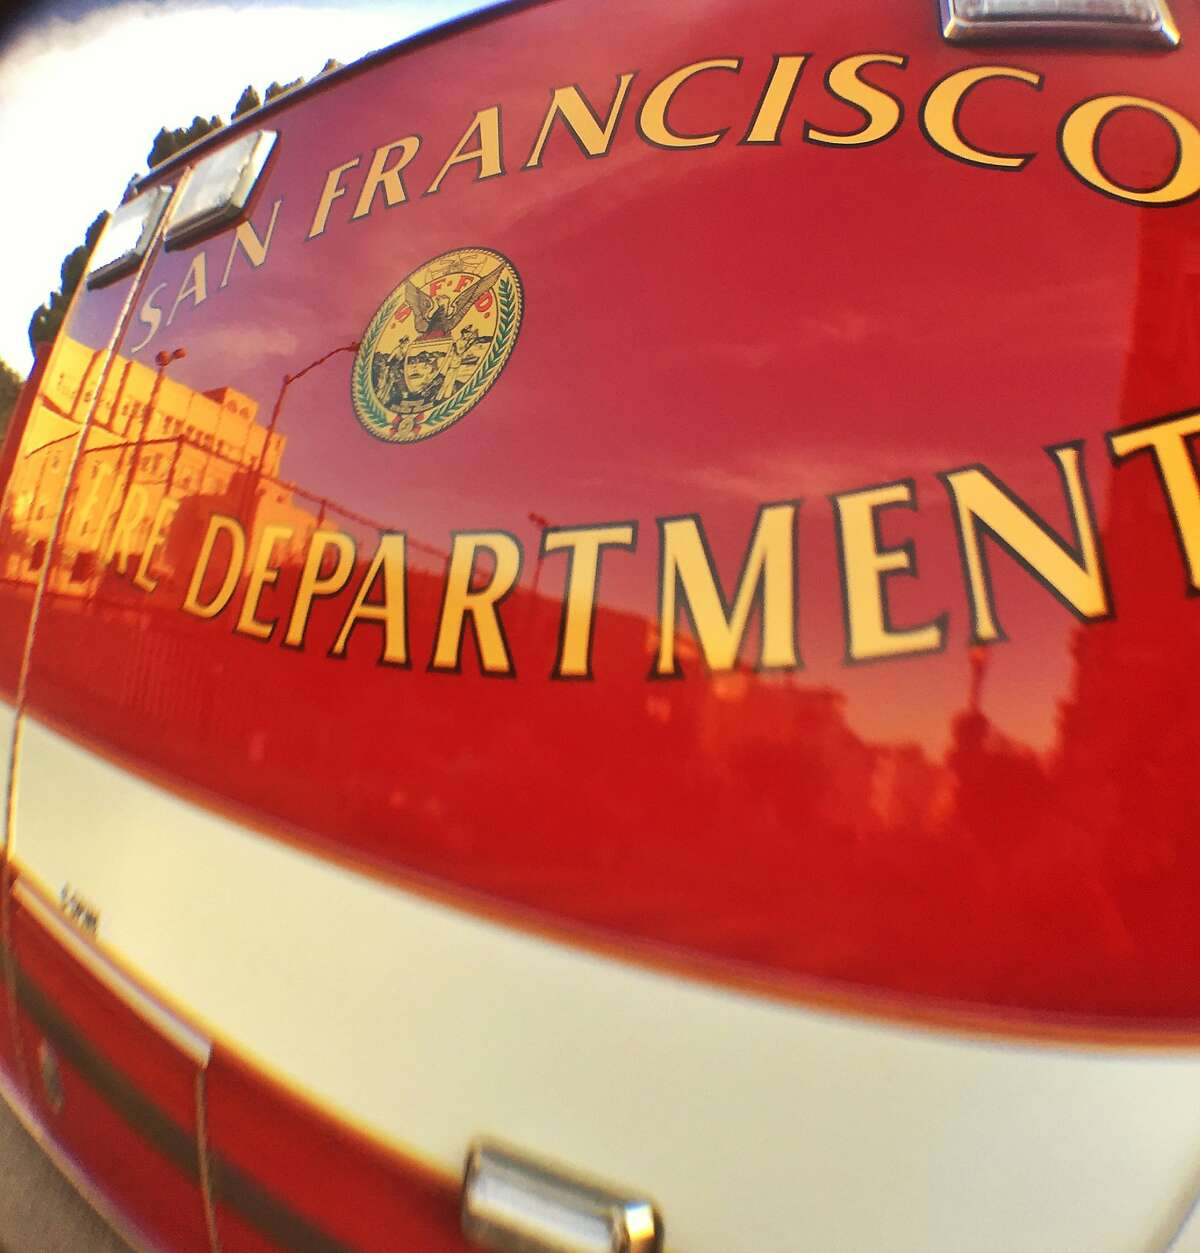 A construction worker was hospitalized with life-threatening injuries after being struck by a pavement roller in San Francisco's West Portal neighborhood Thursday afternoon, officials said.